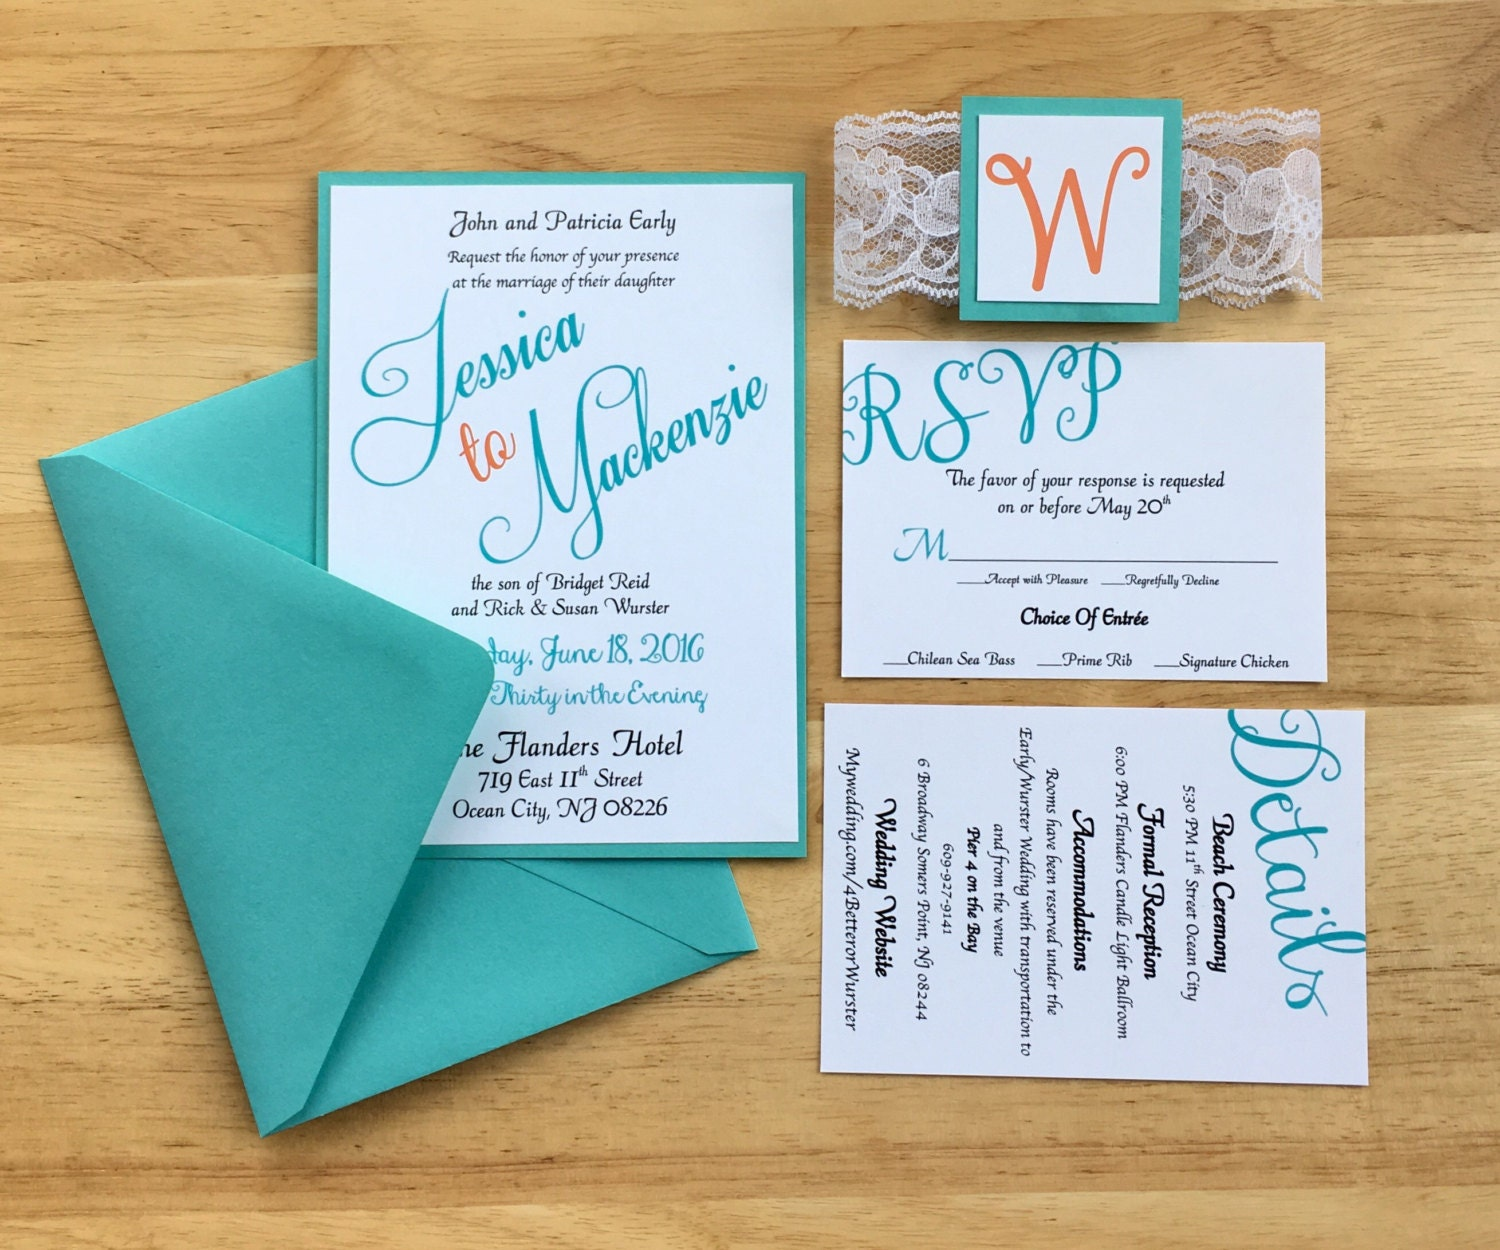 Coral Wedding Invitations: Teal & Coral Wedding Invitations Beach Theme Summer Themed